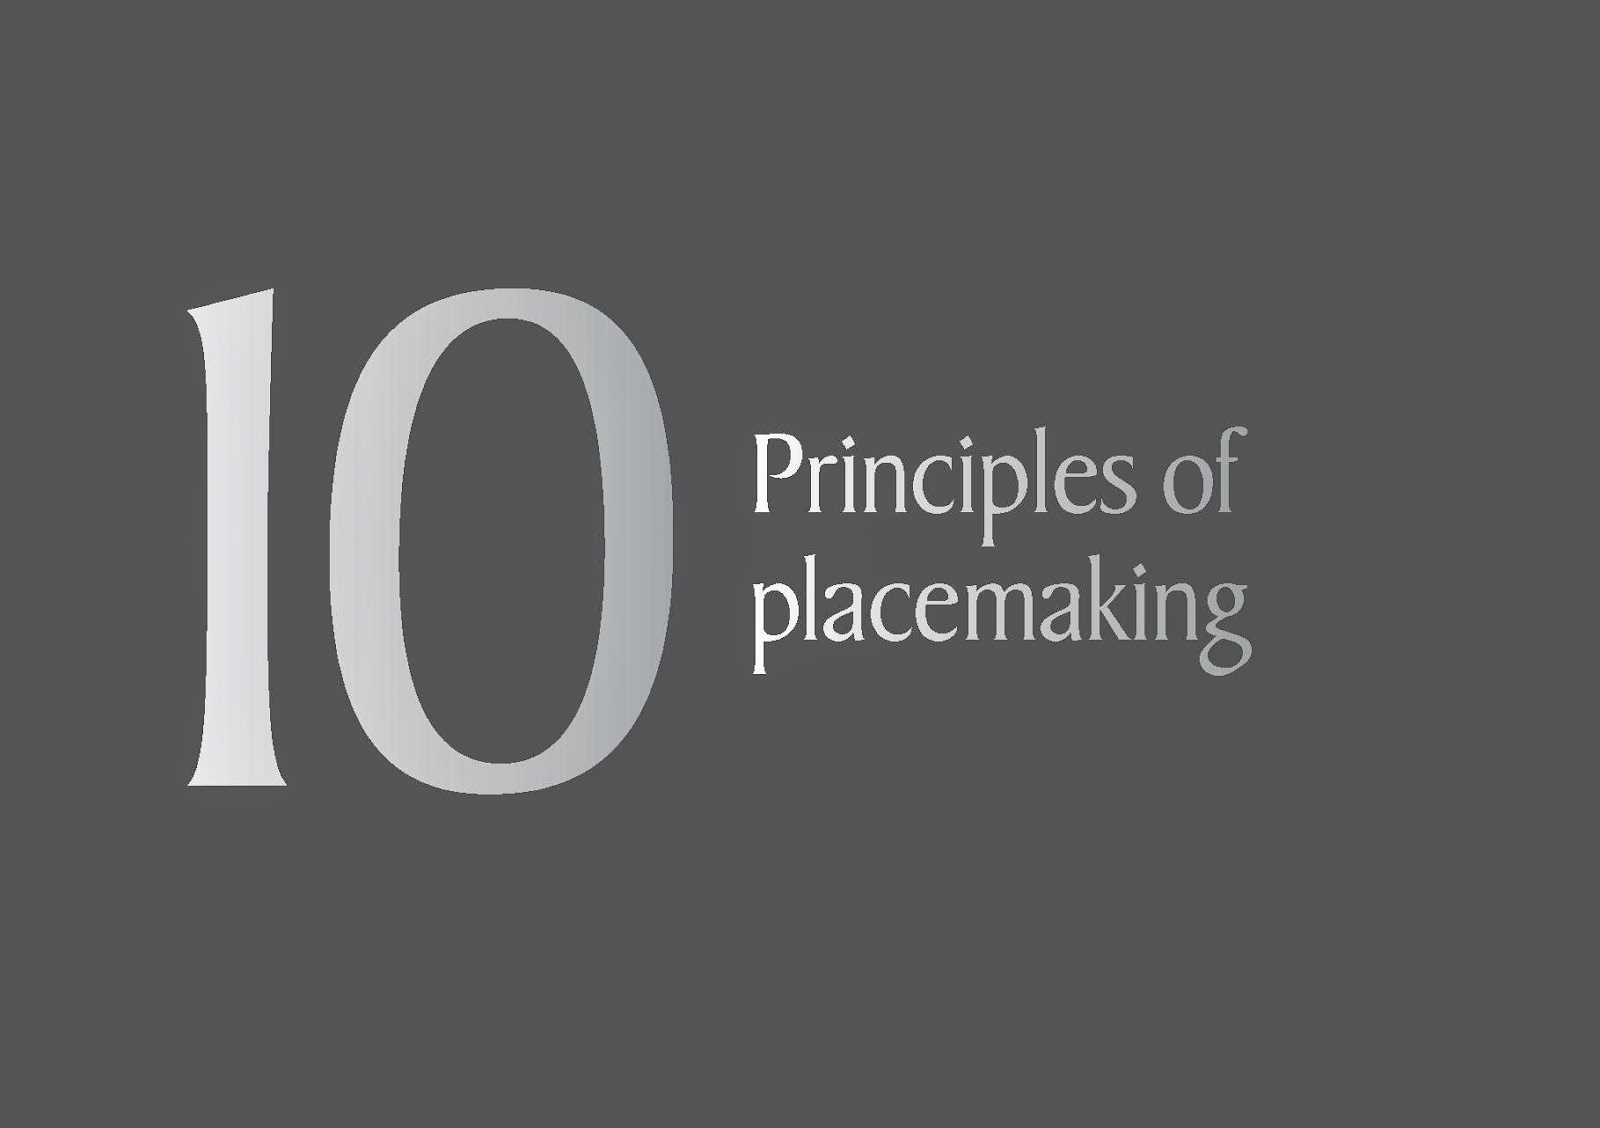 10 Principles of placemaking